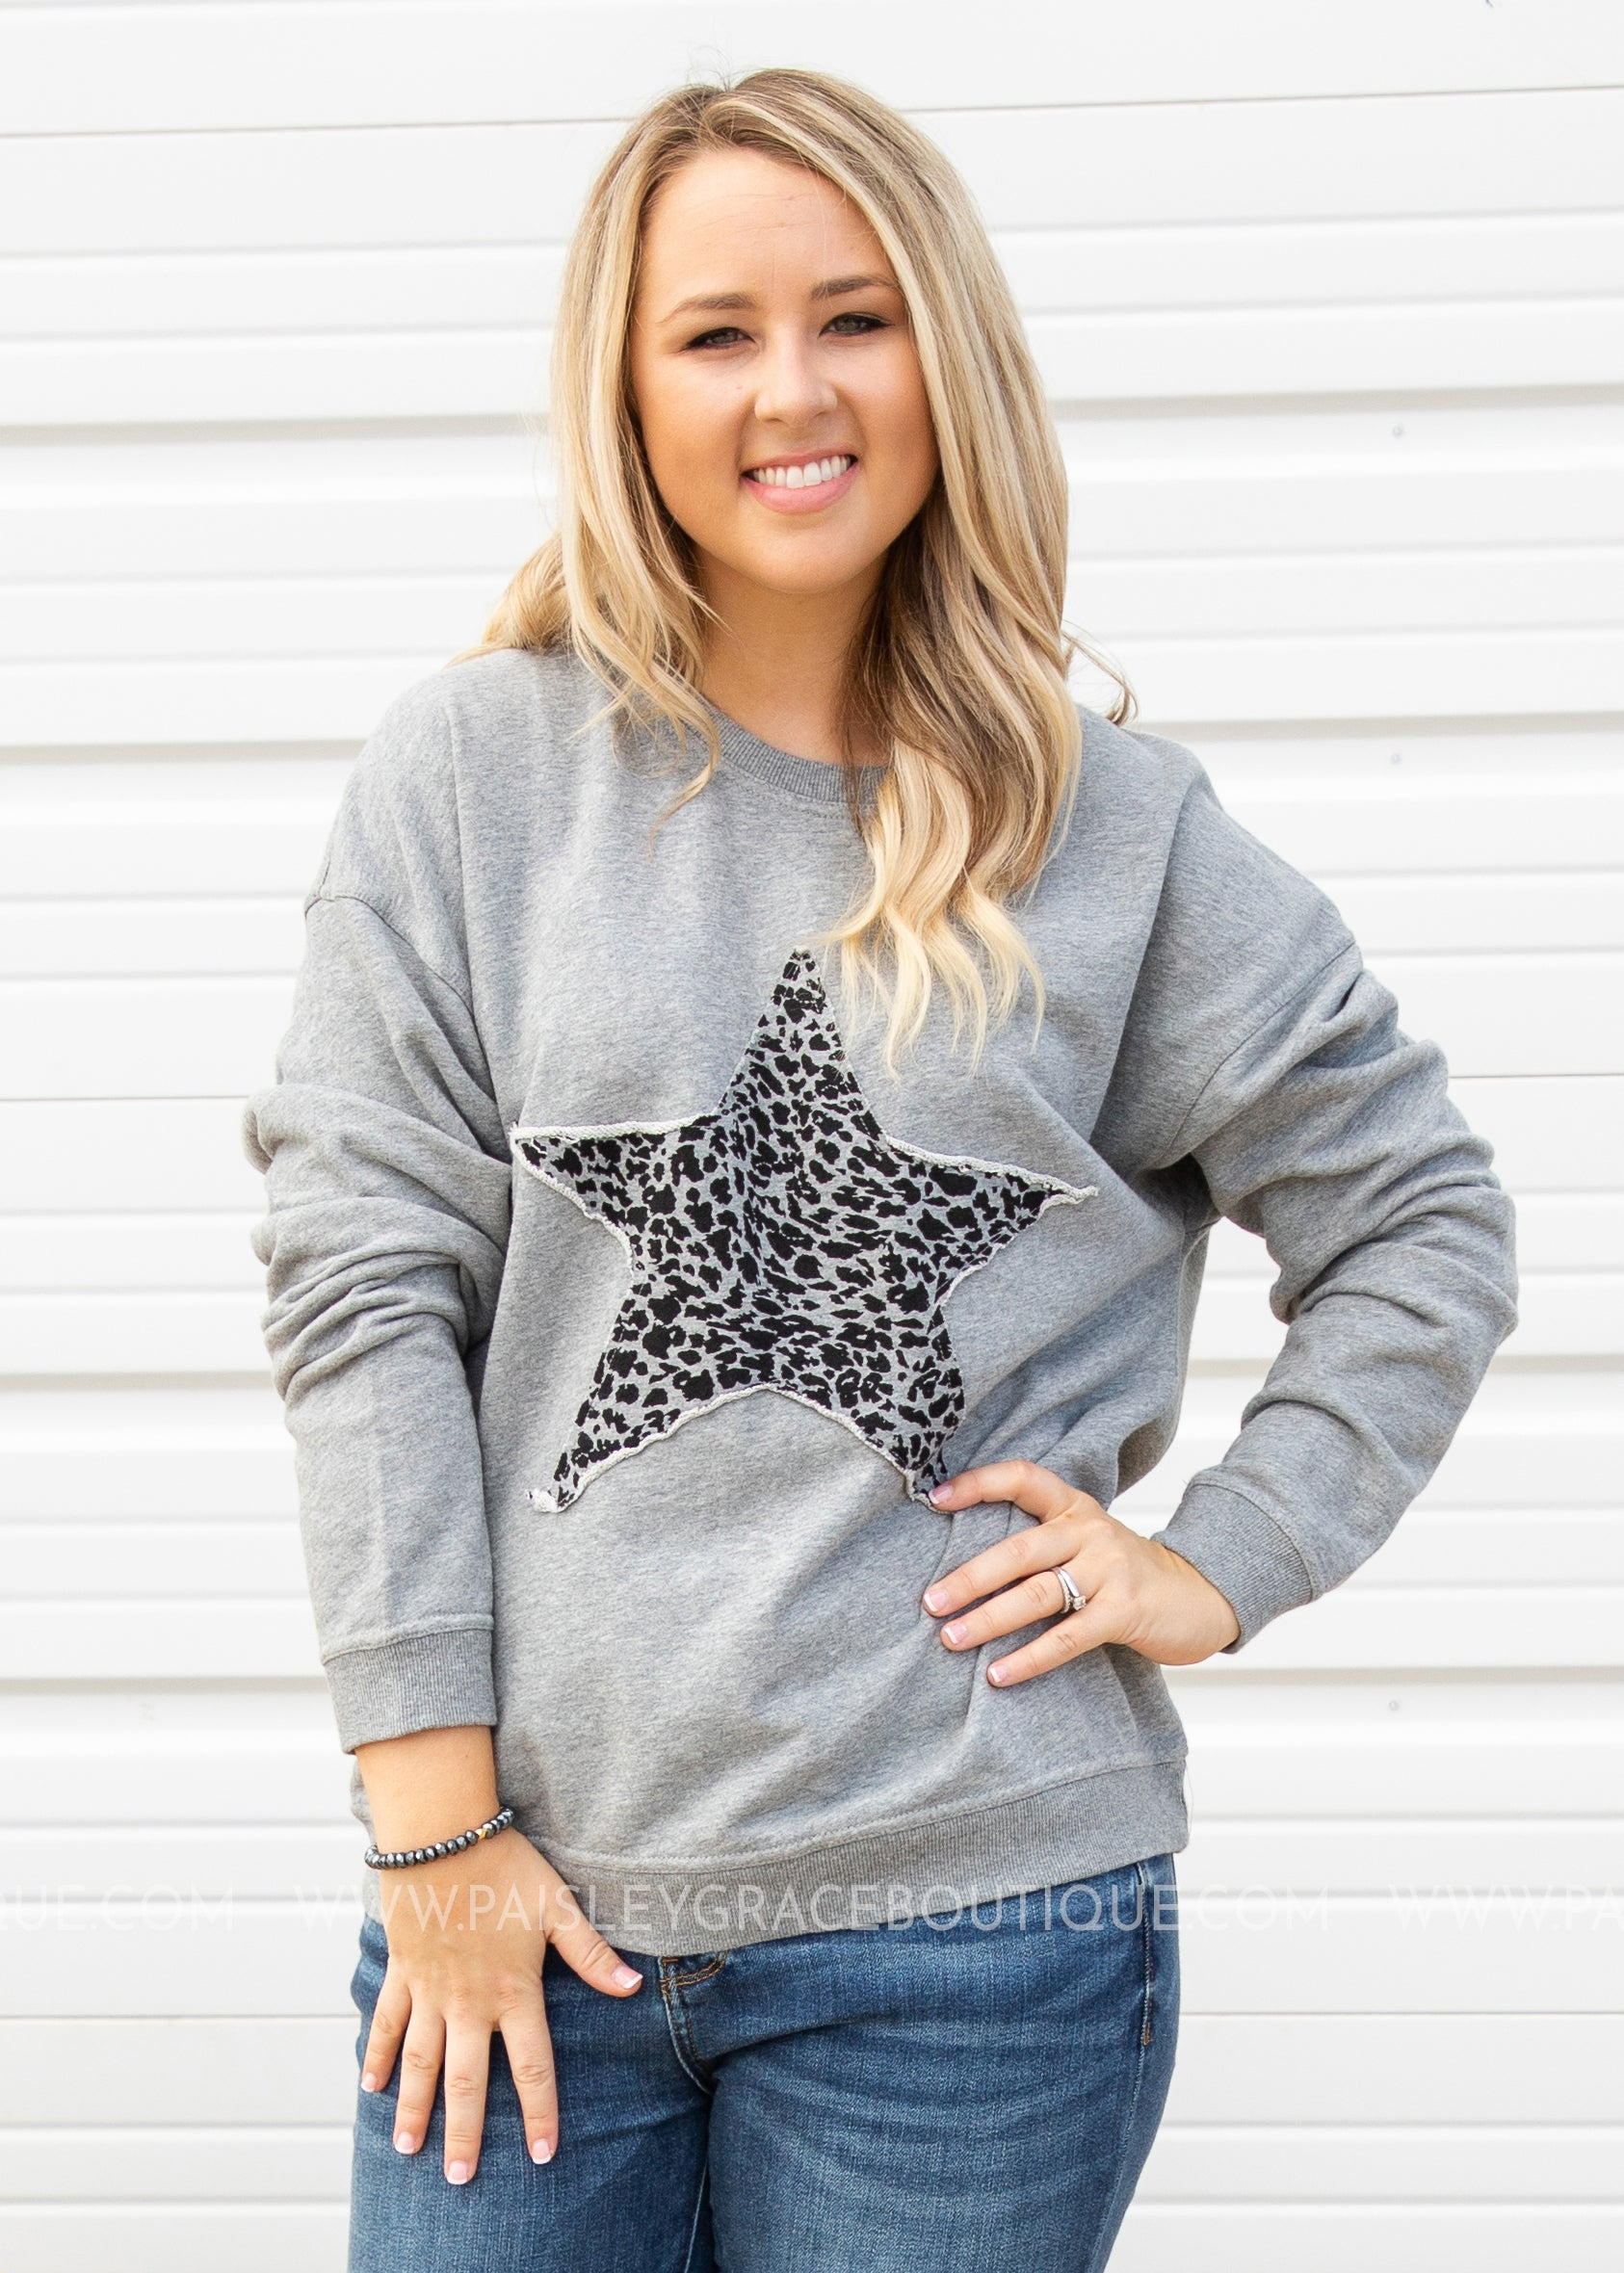 Upon the Stars Sweatshirt